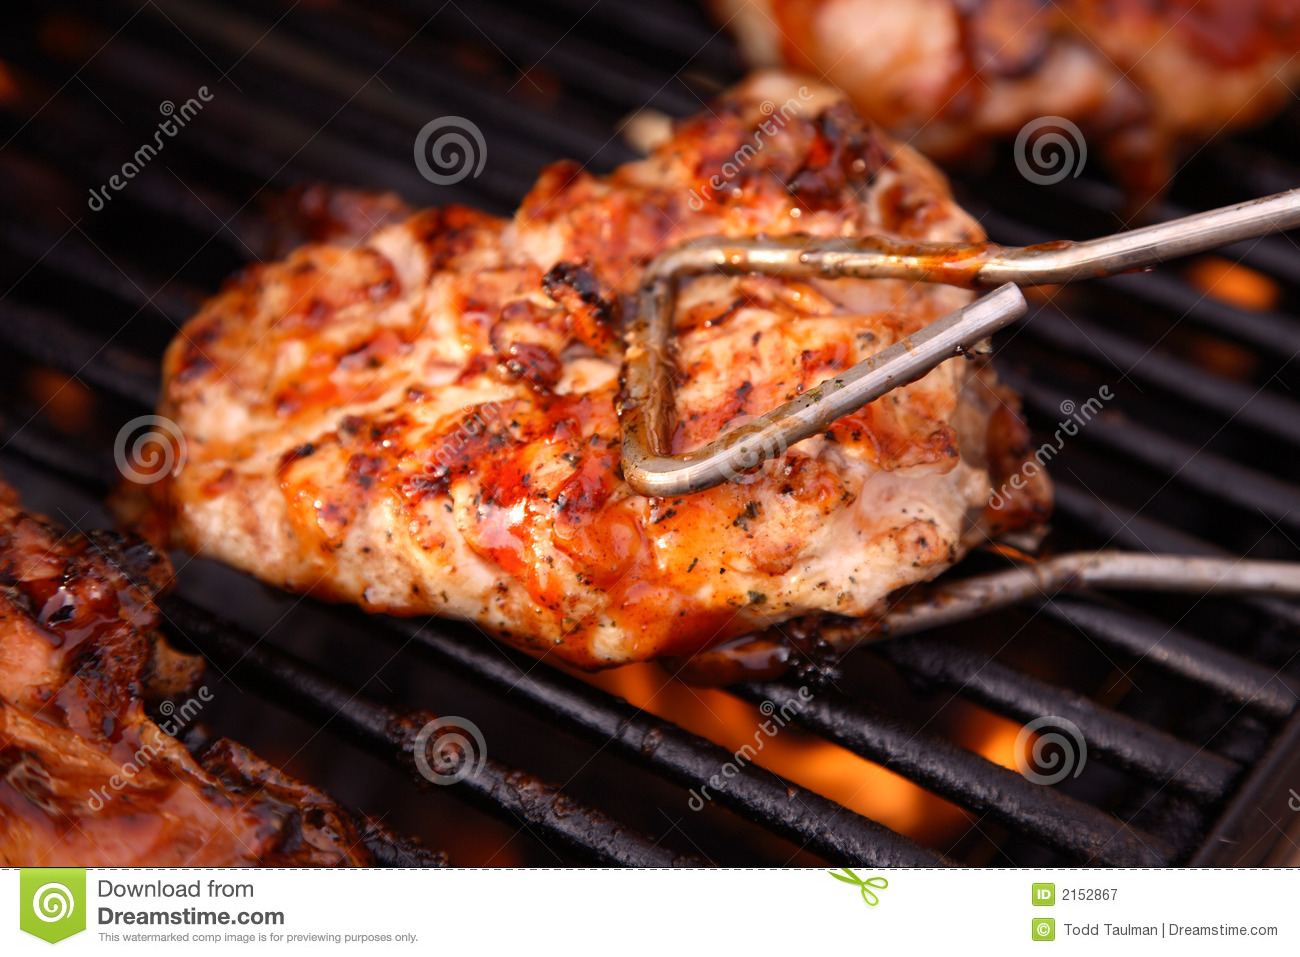 Barbeque Chicken on the Grill